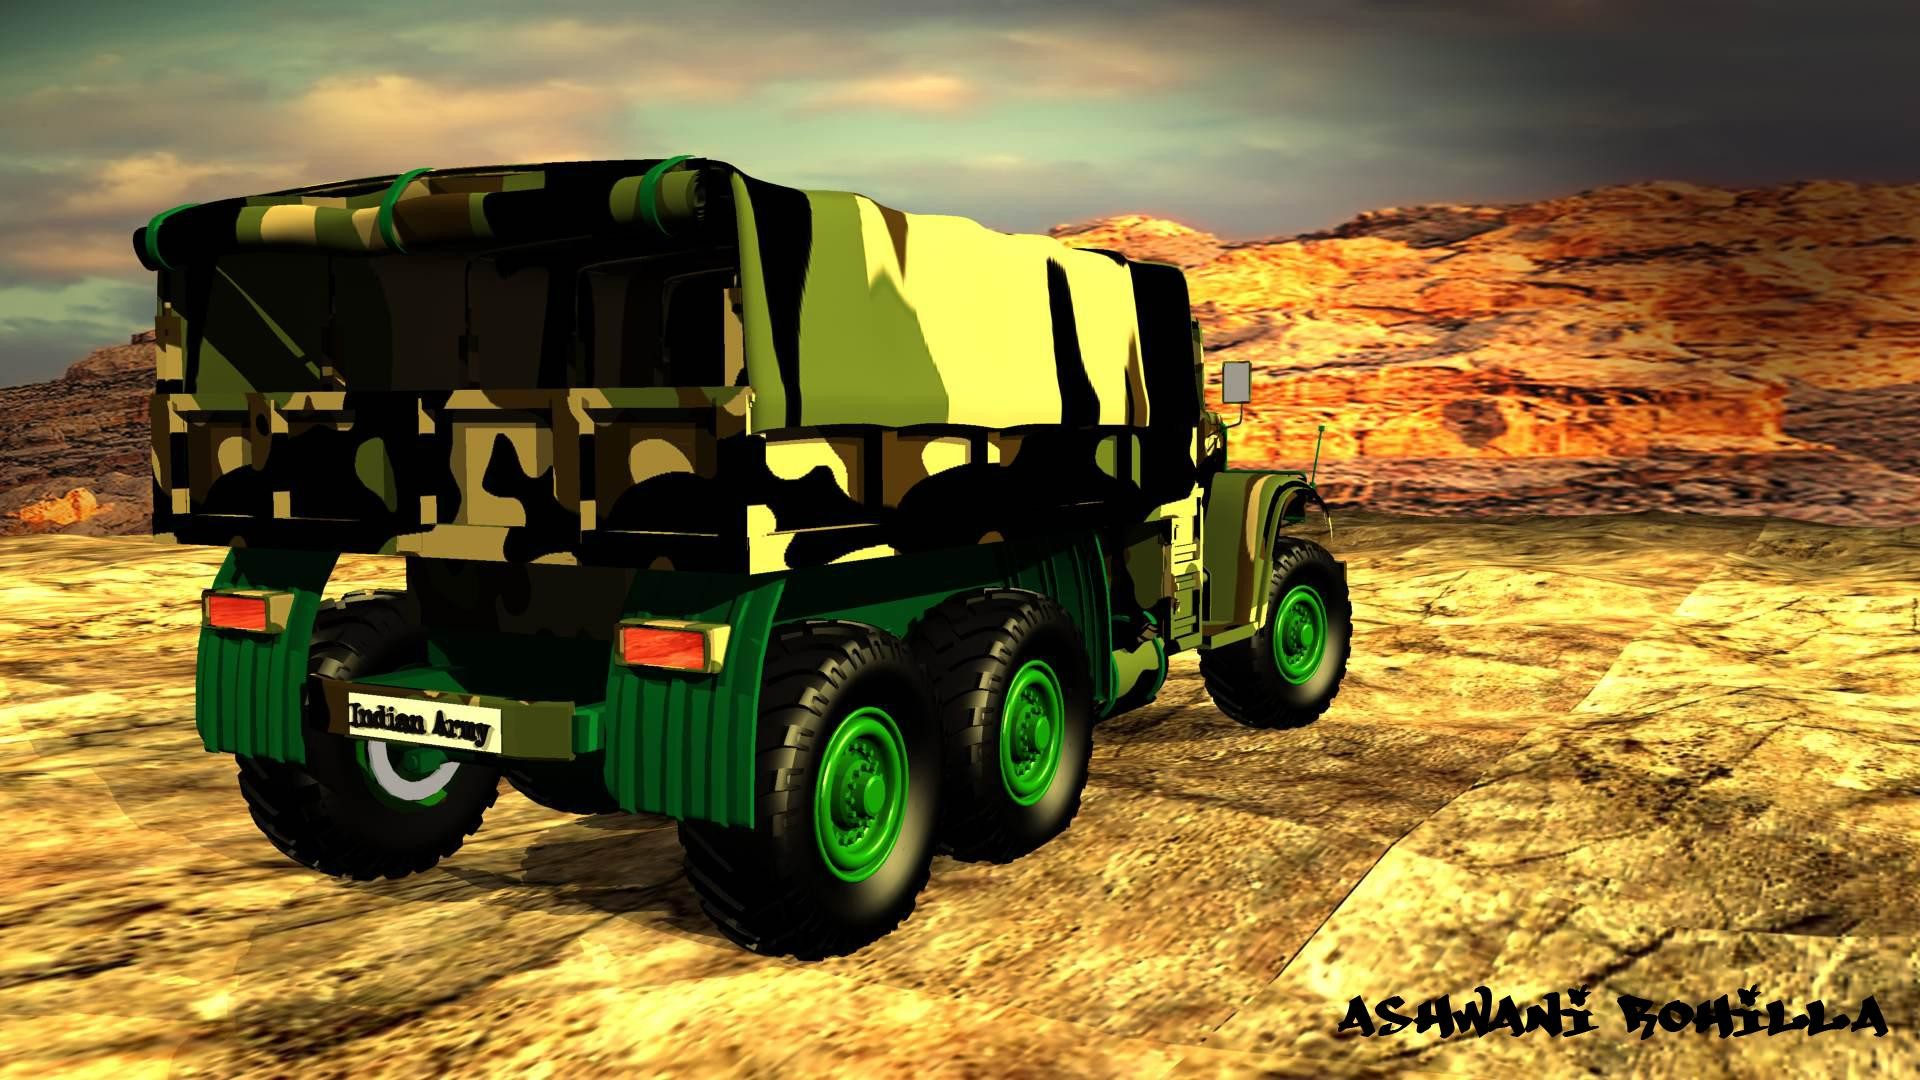 Indian Army Vehicles: Logistics and Engineering